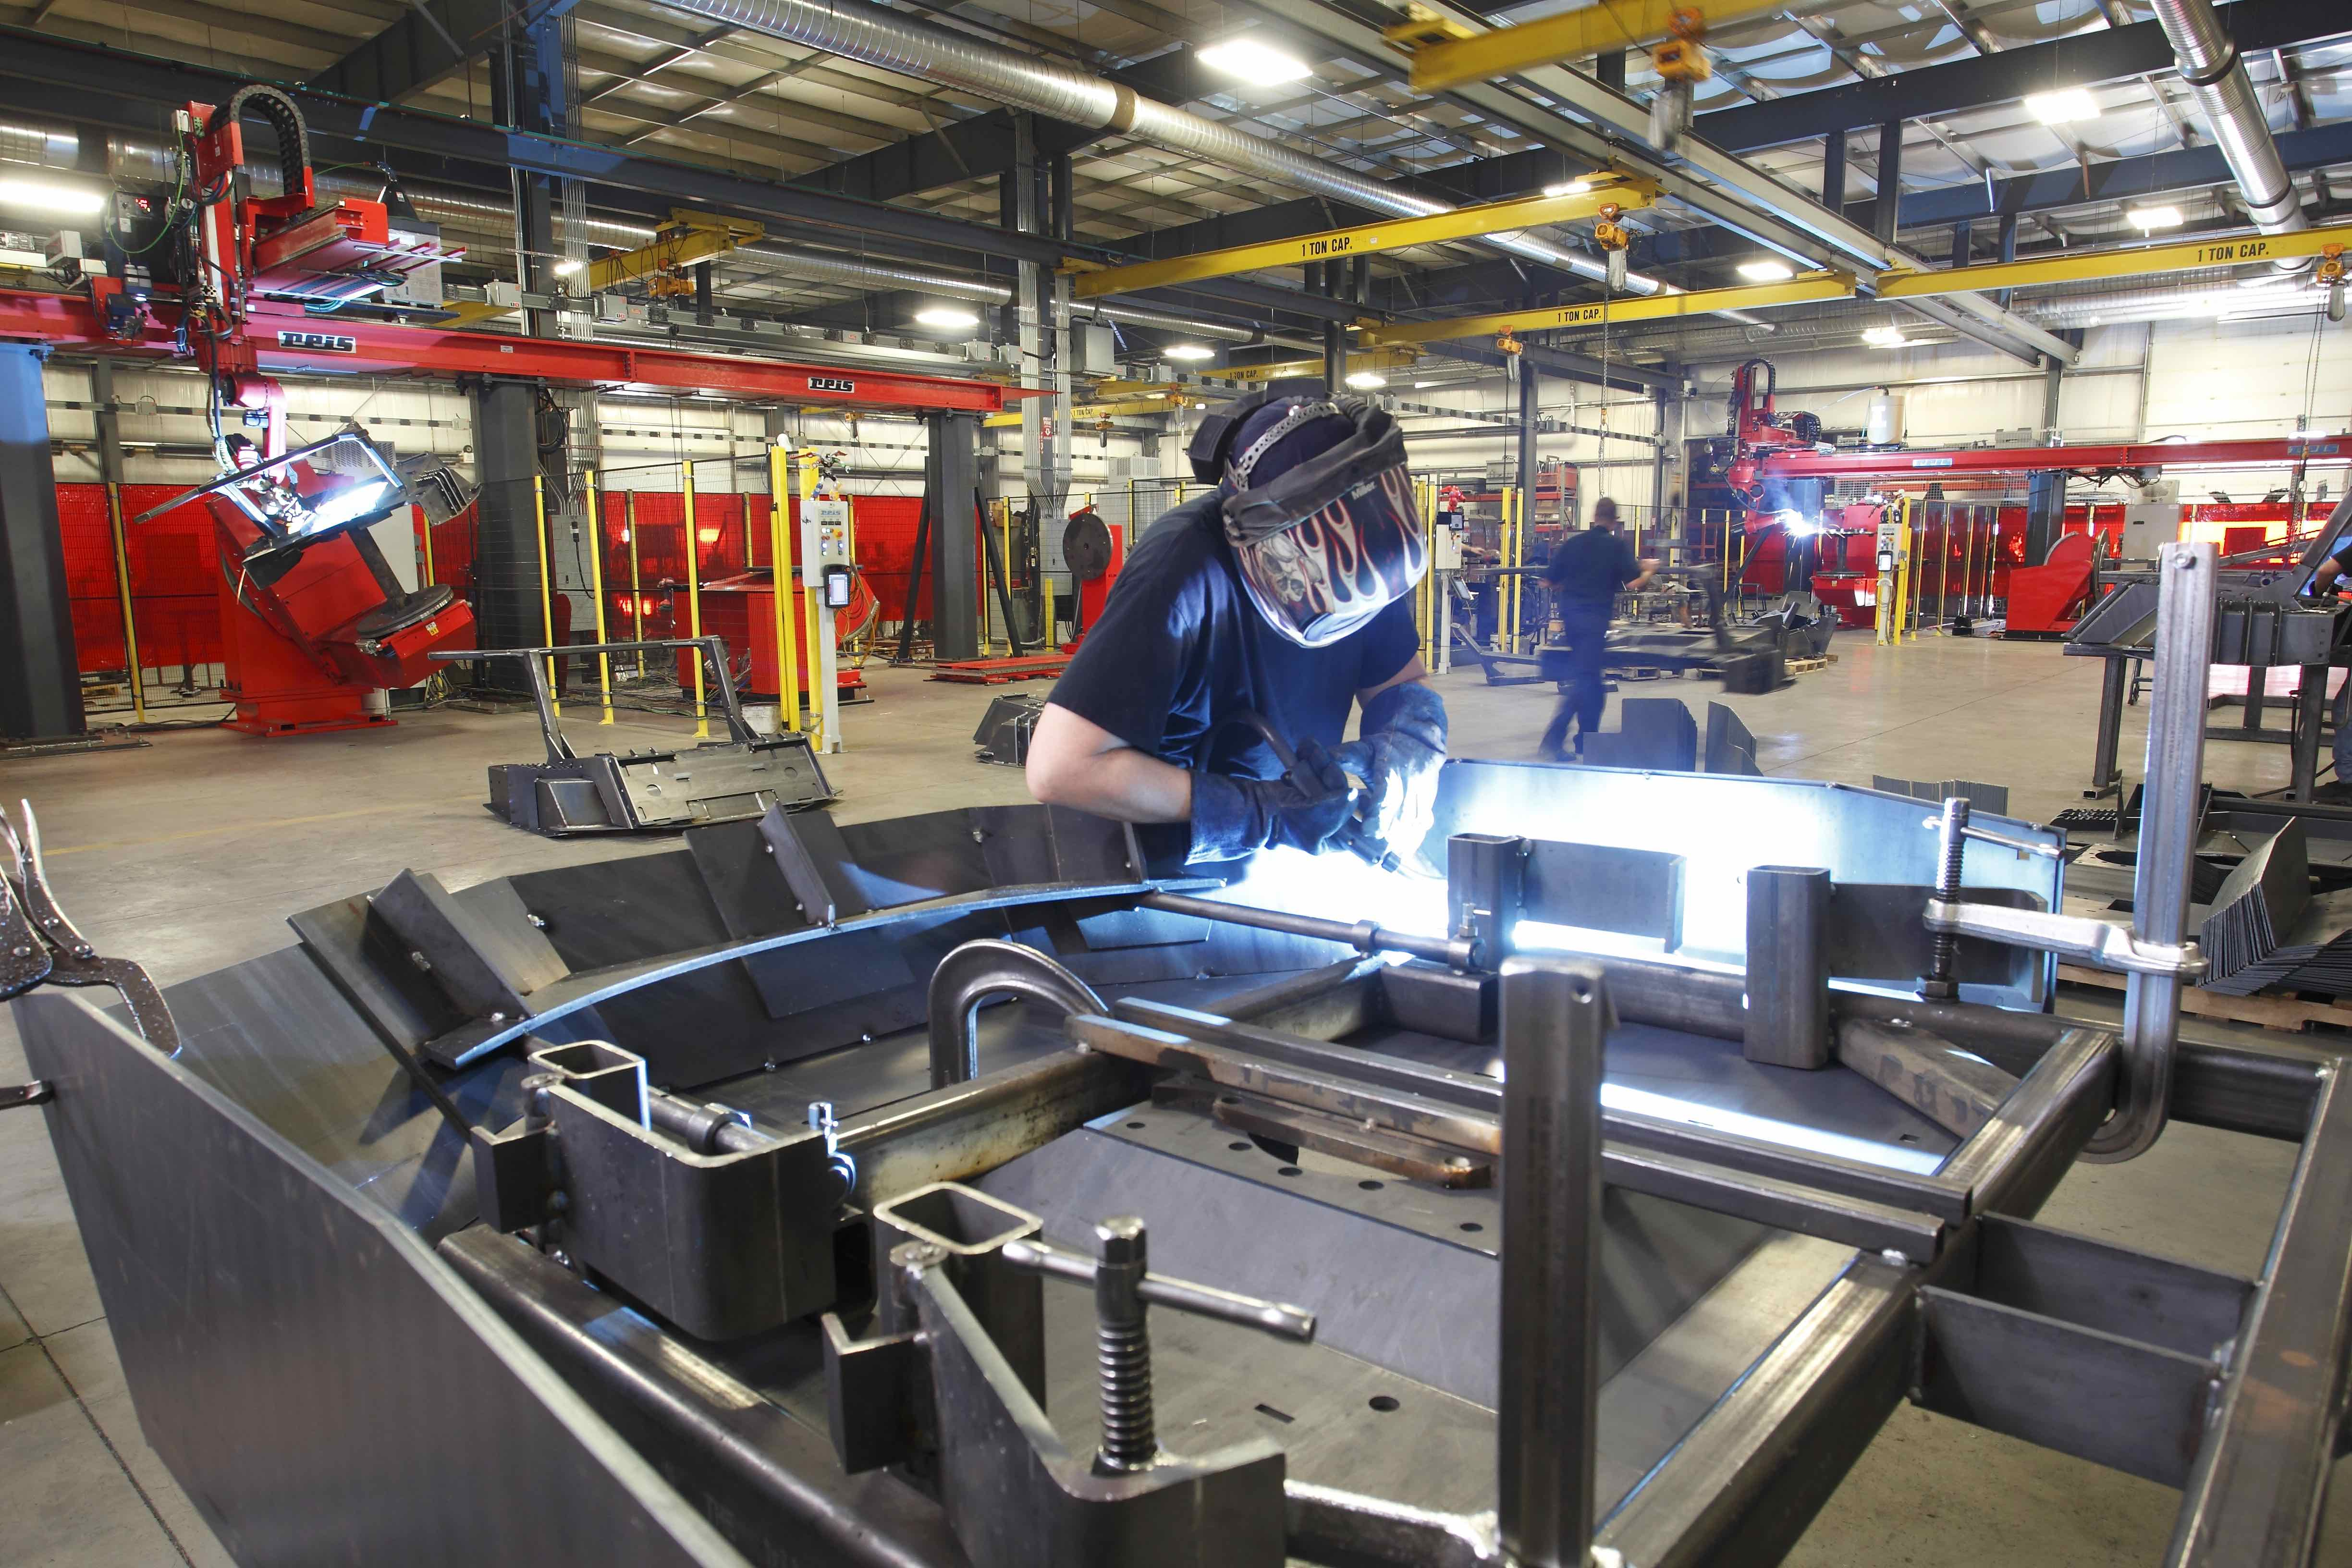 Sioux Falls Business Asks about Future Plans - DeGeest Steel